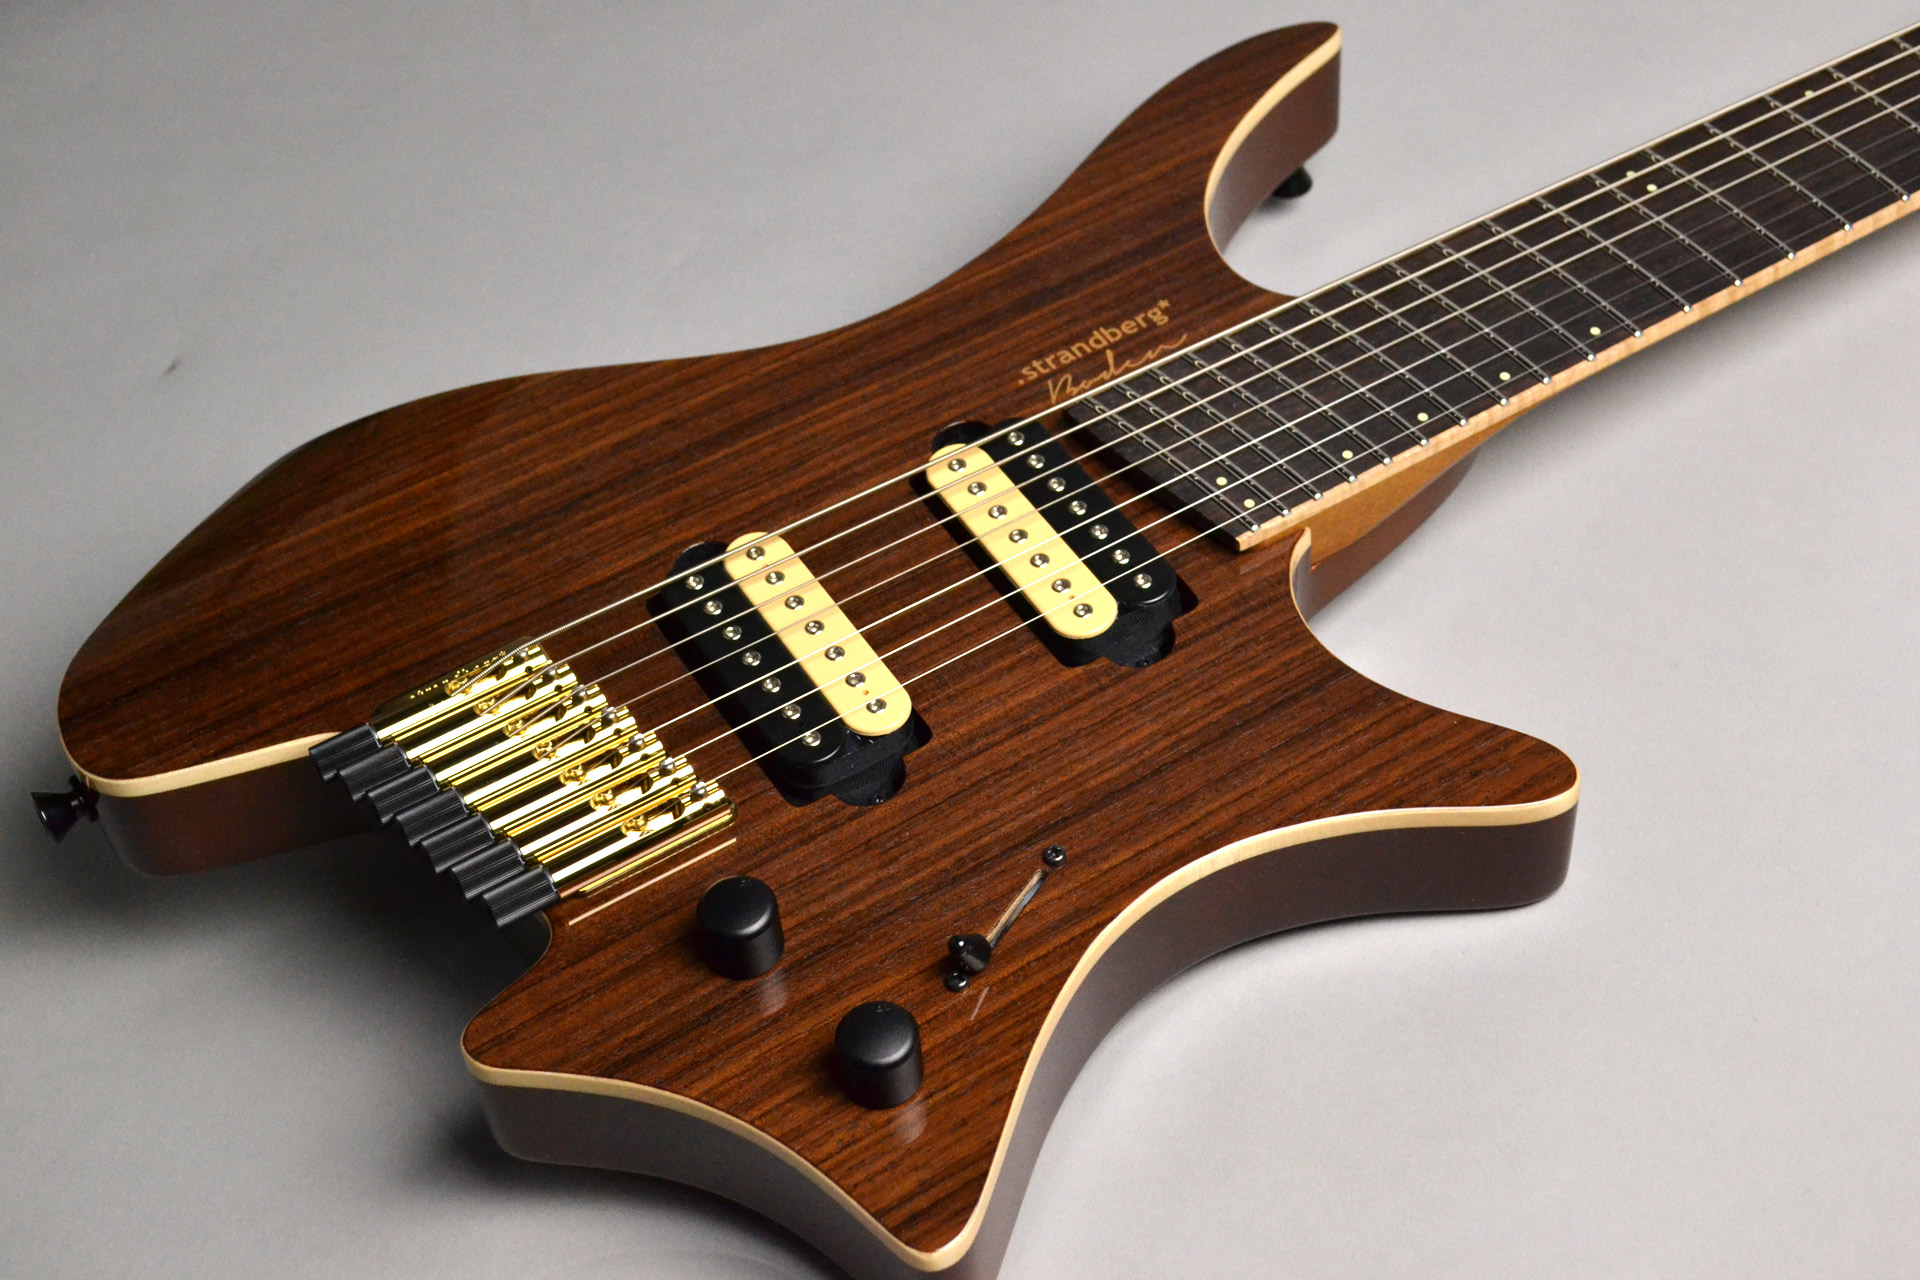 Boden J7 Standard Rosewood Roasted Maple Neckのボディトップ-アップ画像